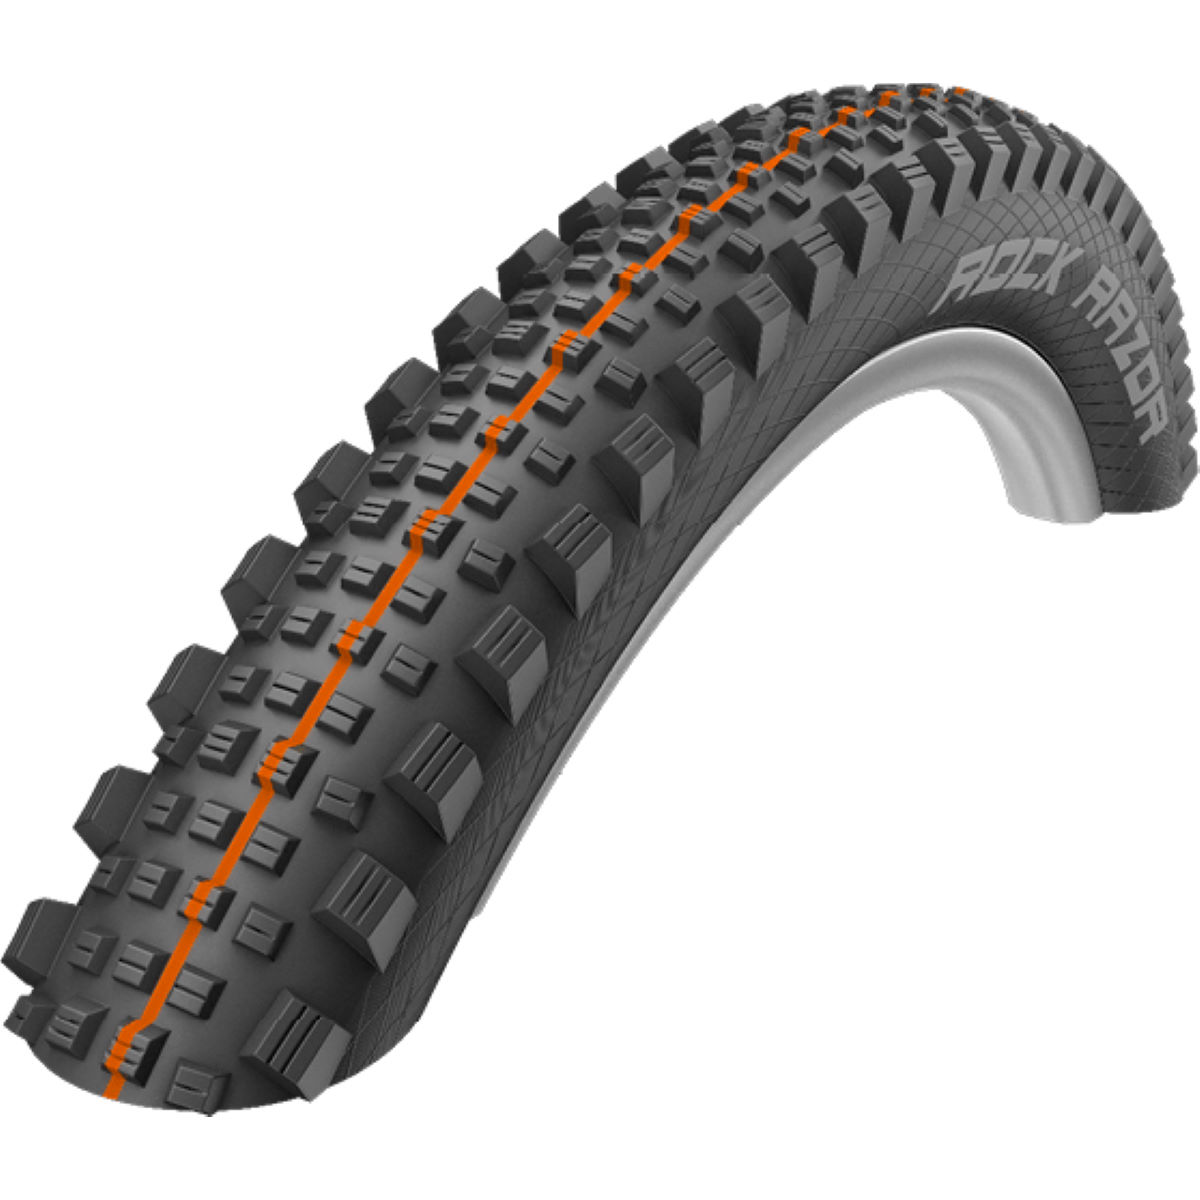 Pneu VTT Schwalbe Rock Razor Addix SuperGravity - 27.5'' Noir/Orange